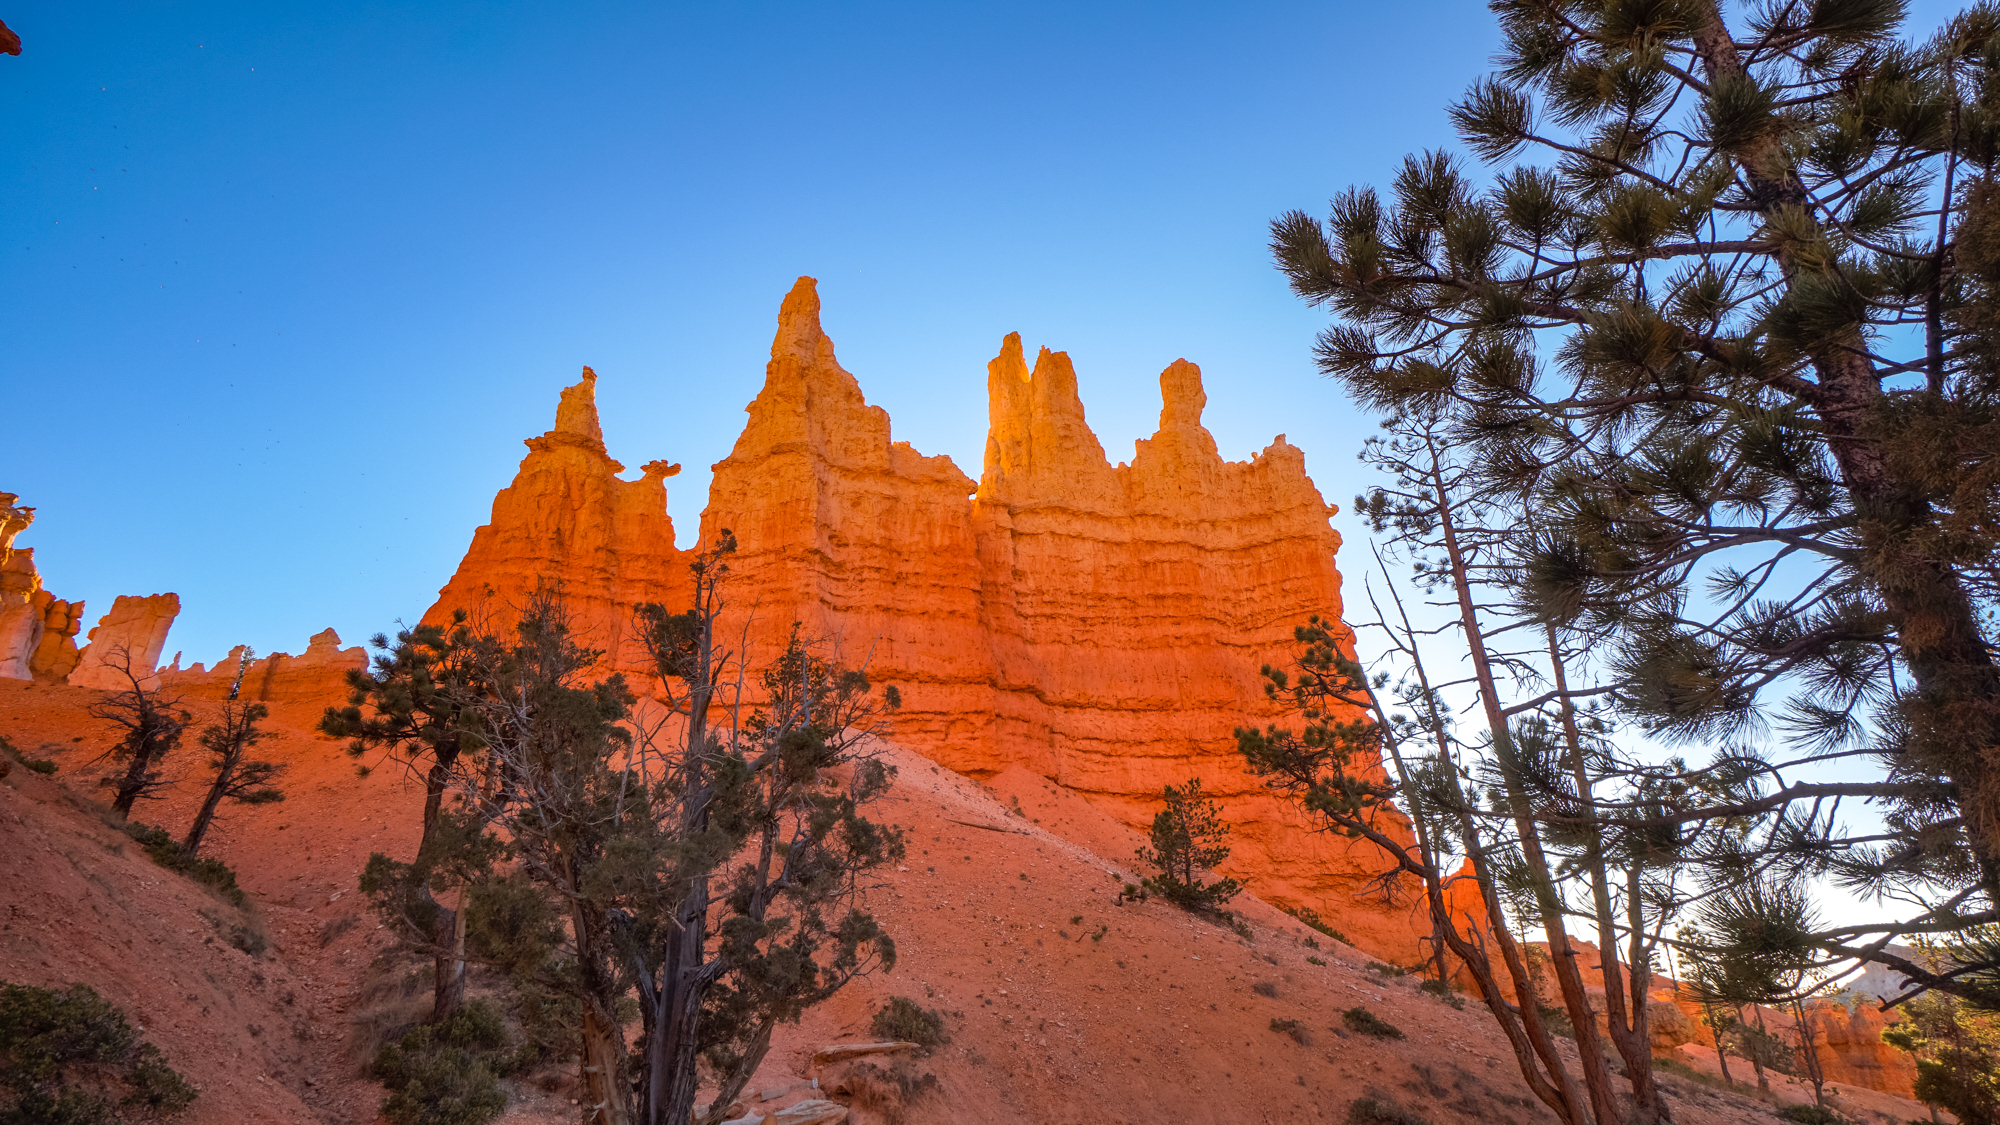 Hike with us along the largest collection of hoodoos in the World - a place to reflect